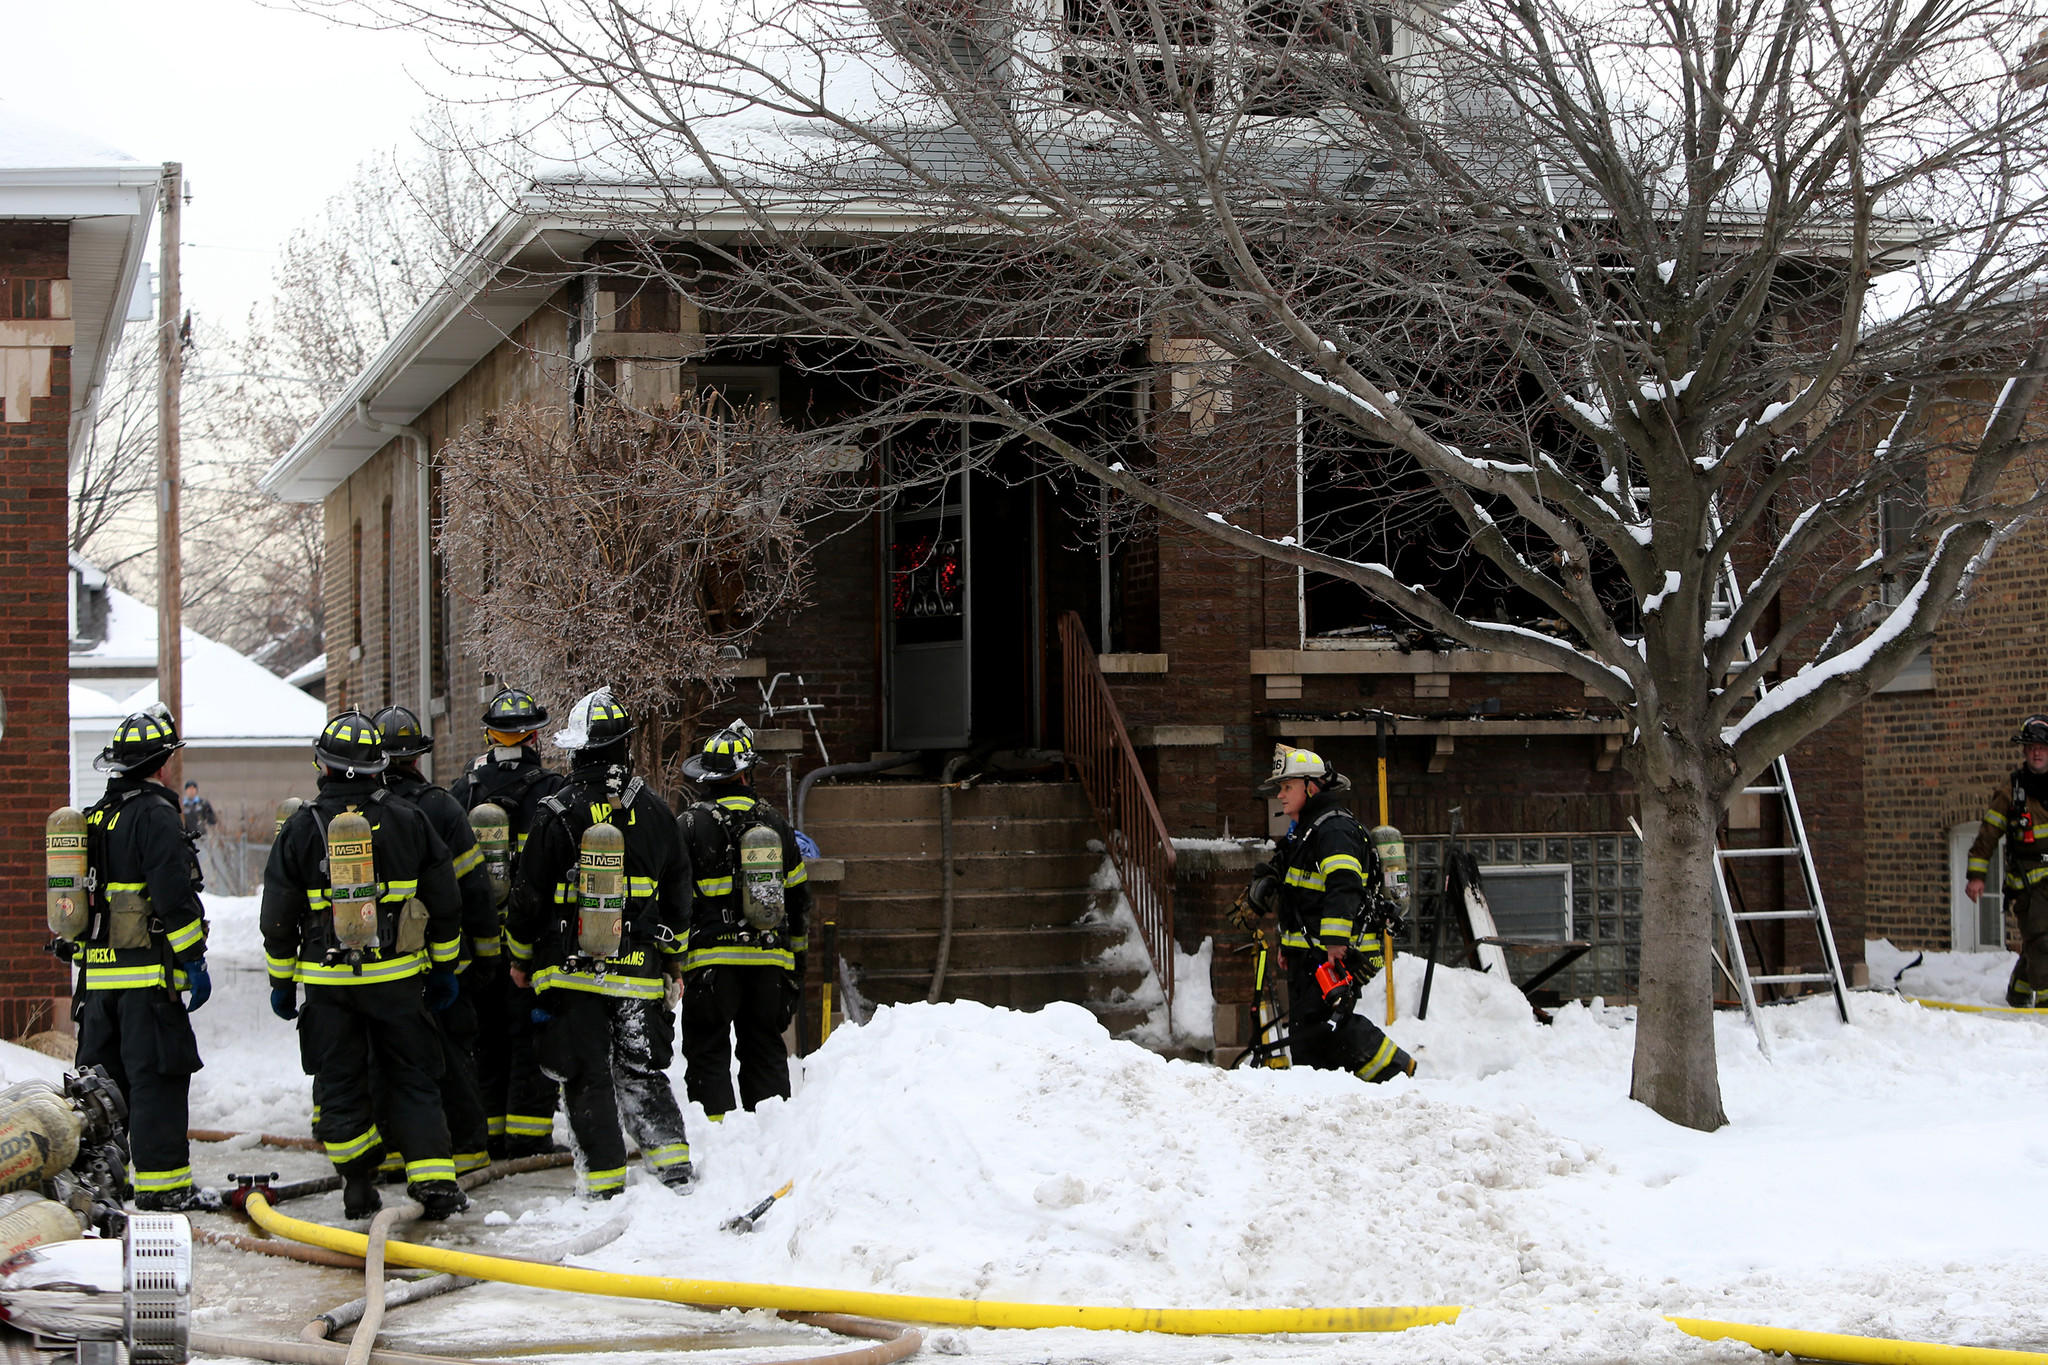 Berwyn firefighters clean up following a fire in the 2400 block of South Scoville Avenue in Berwyn on Tuesday.